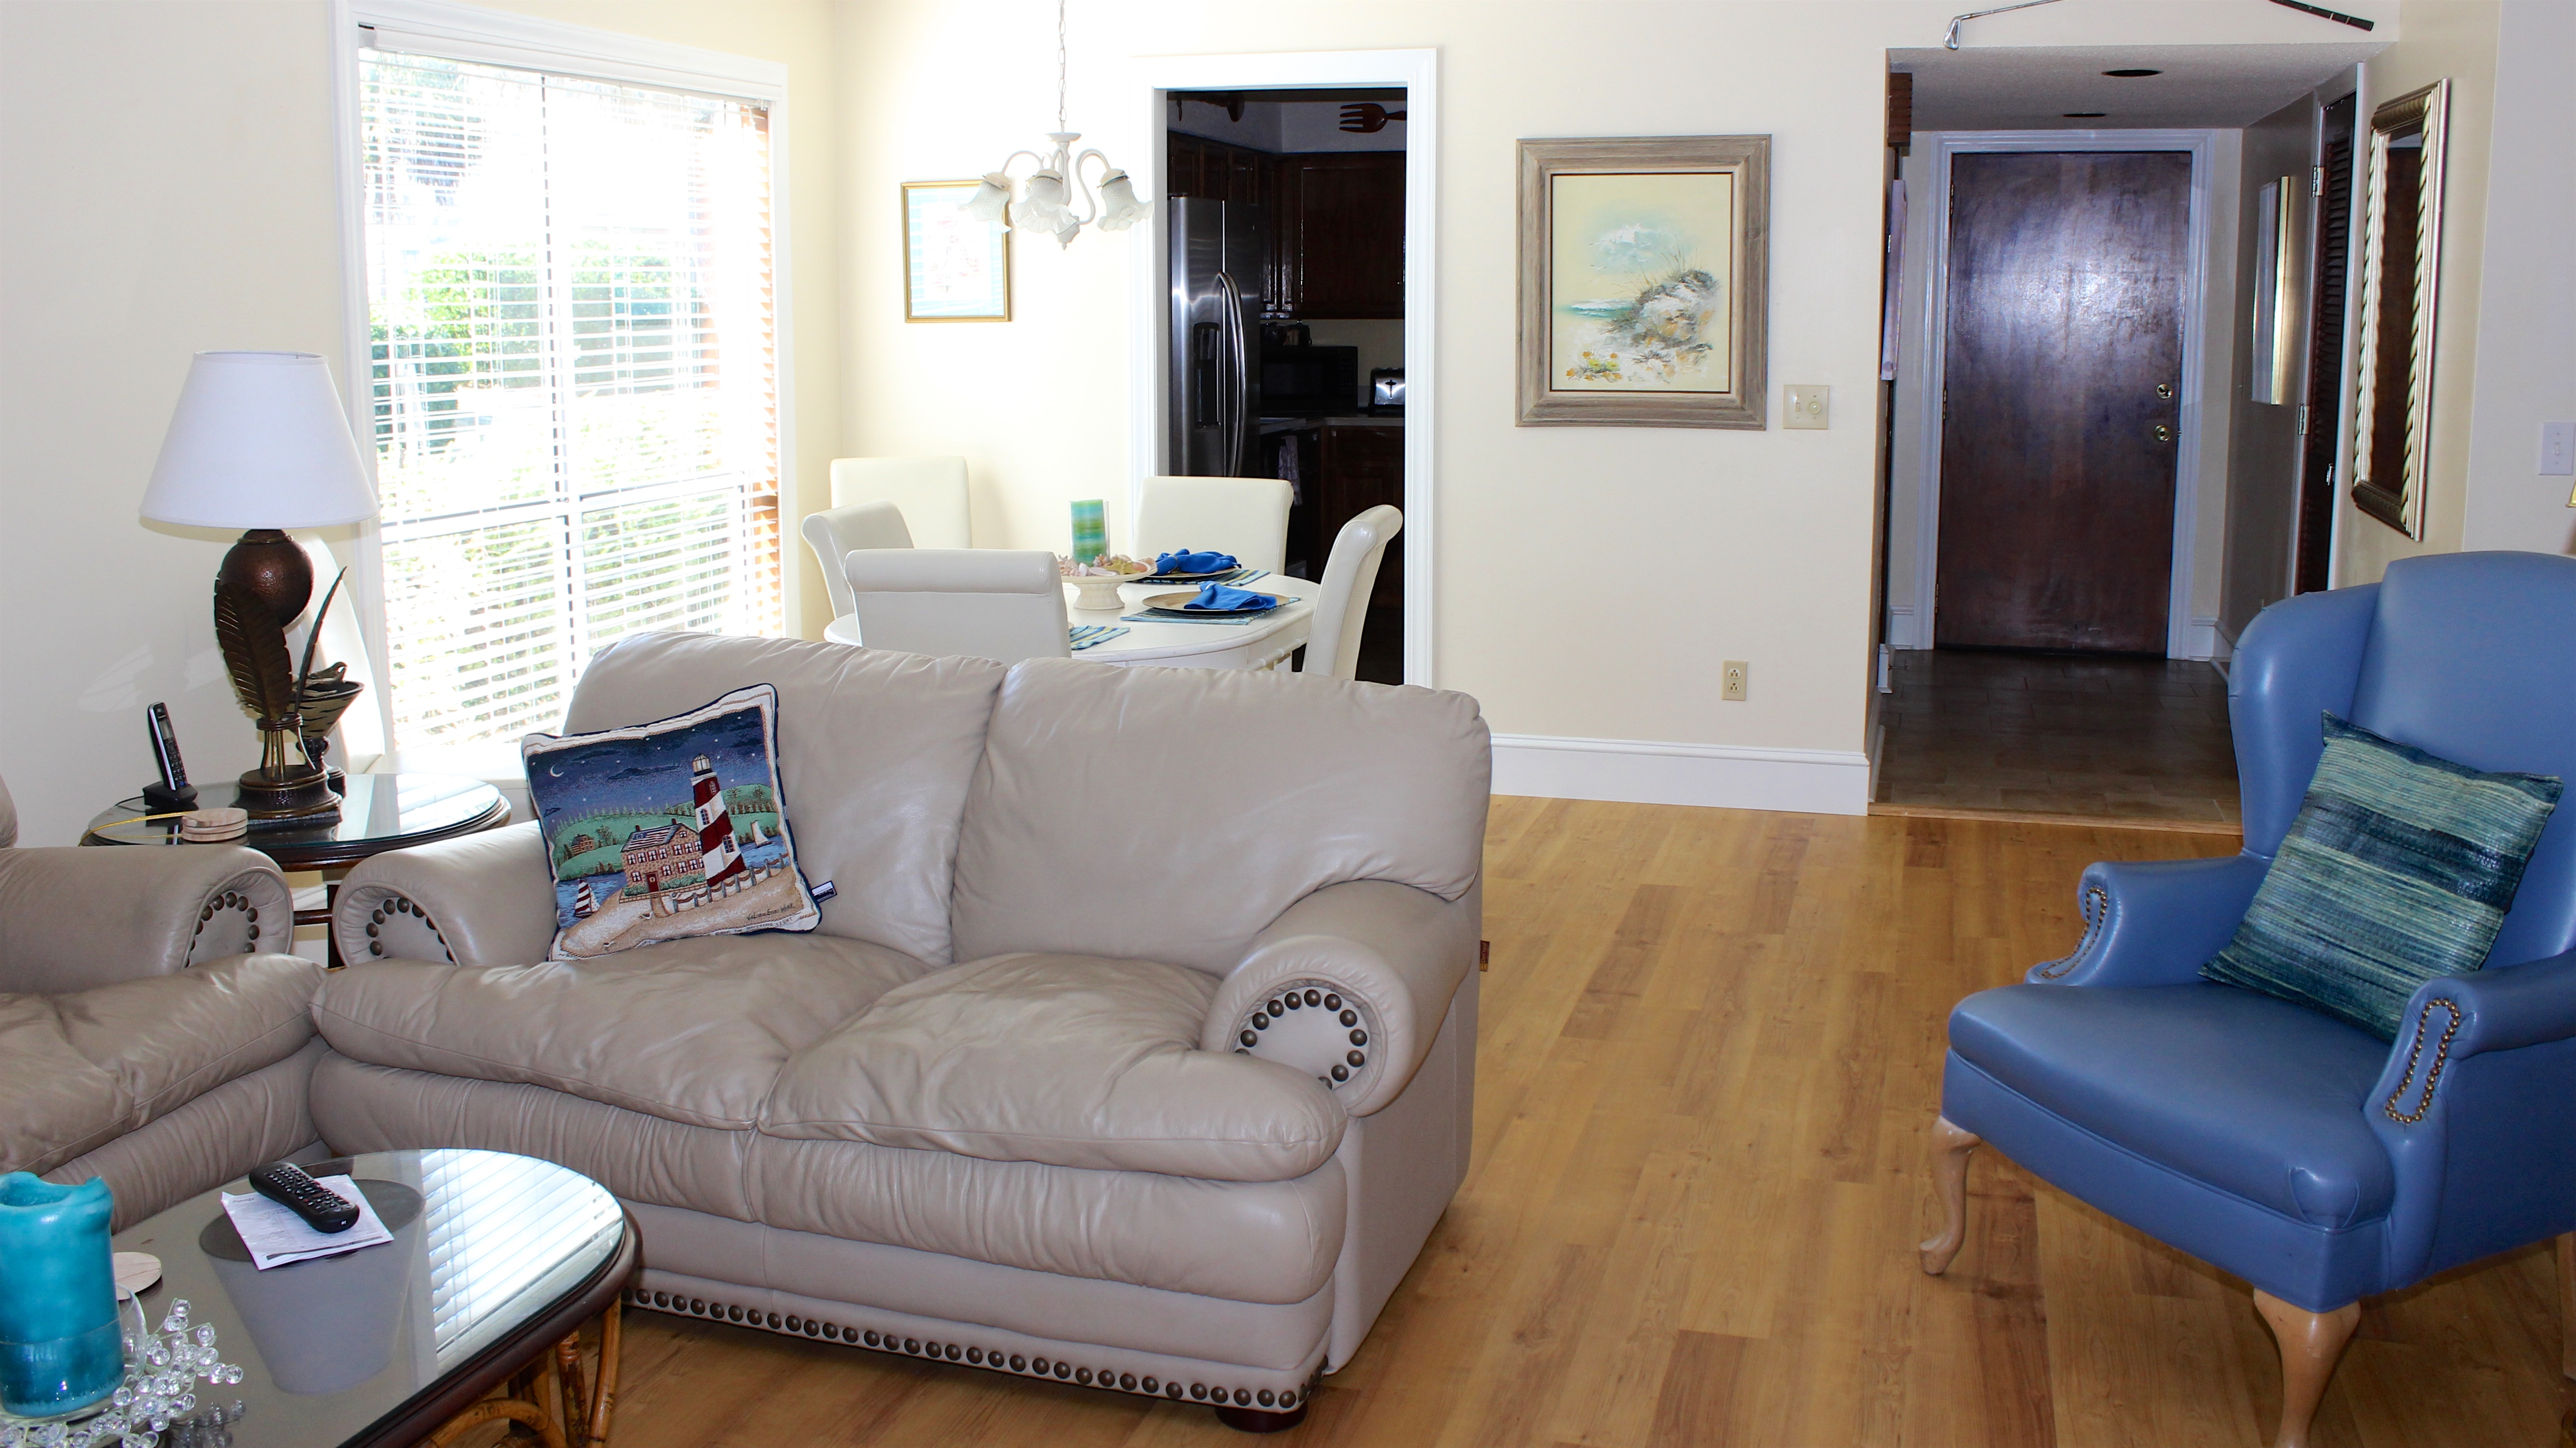 The open living area has high ceilings. The kitchen and dining area are nearby.